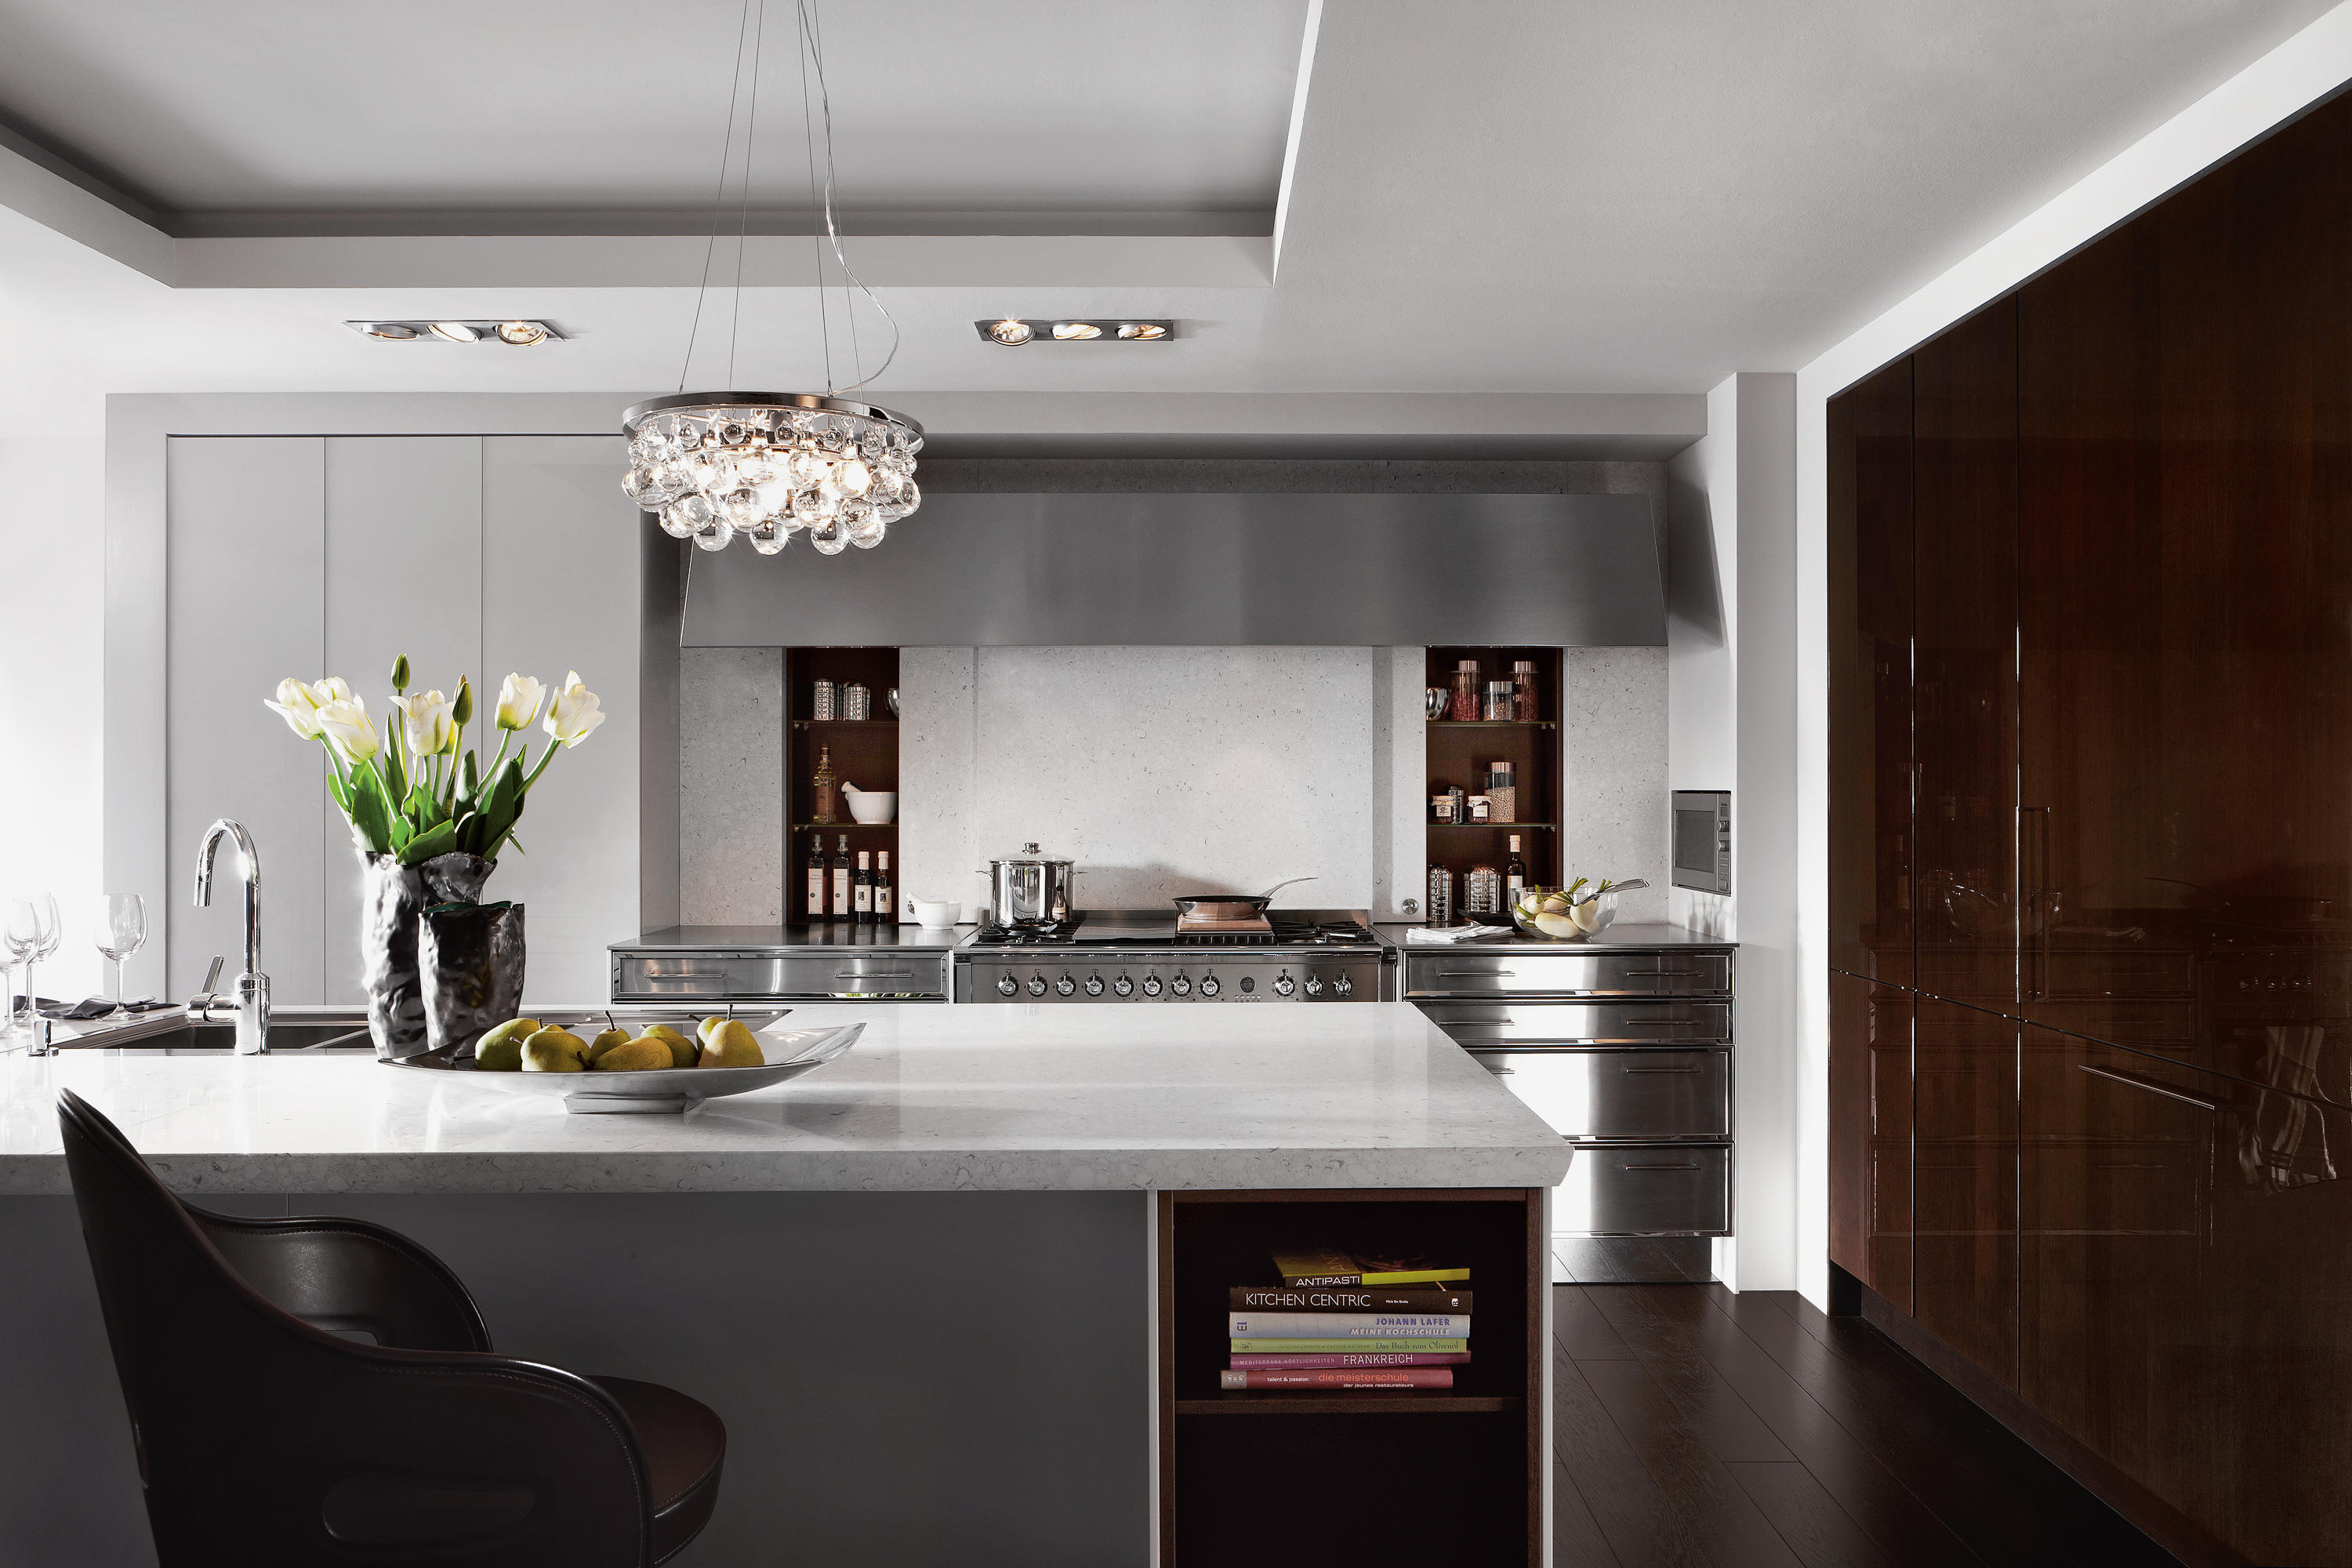 siematic se 2002 ba fitted kitchens from siematic. Black Bedroom Furniture Sets. Home Design Ideas